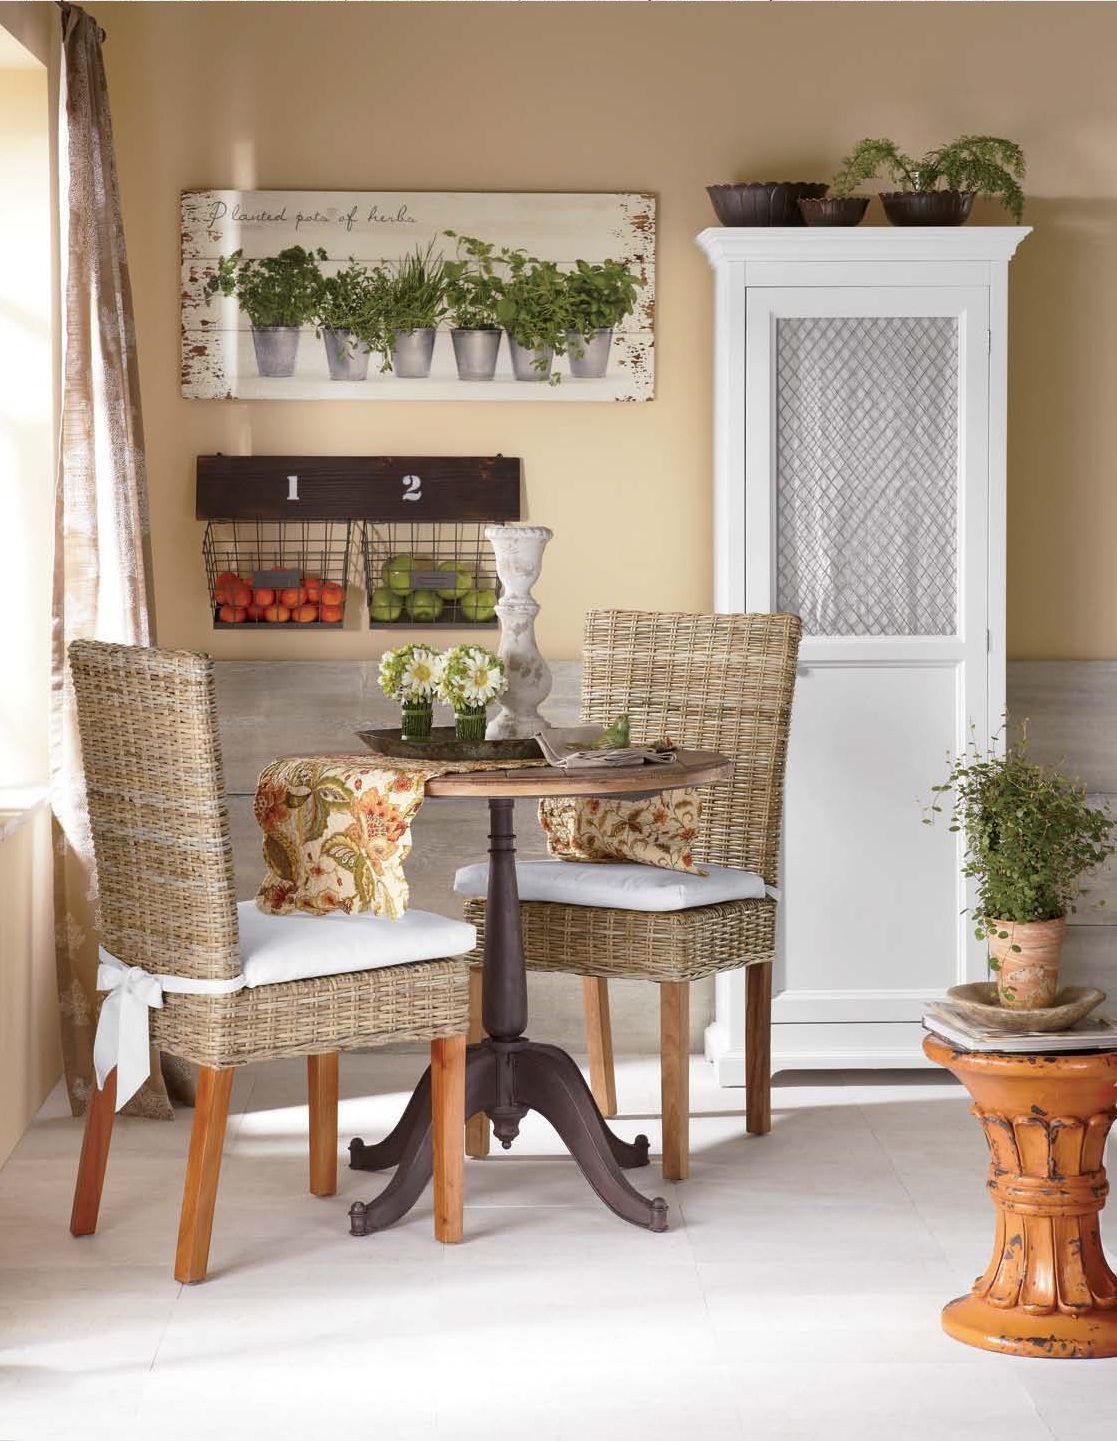 Cozy Kitchen Maximize A Small Dining Space With A Round Table And